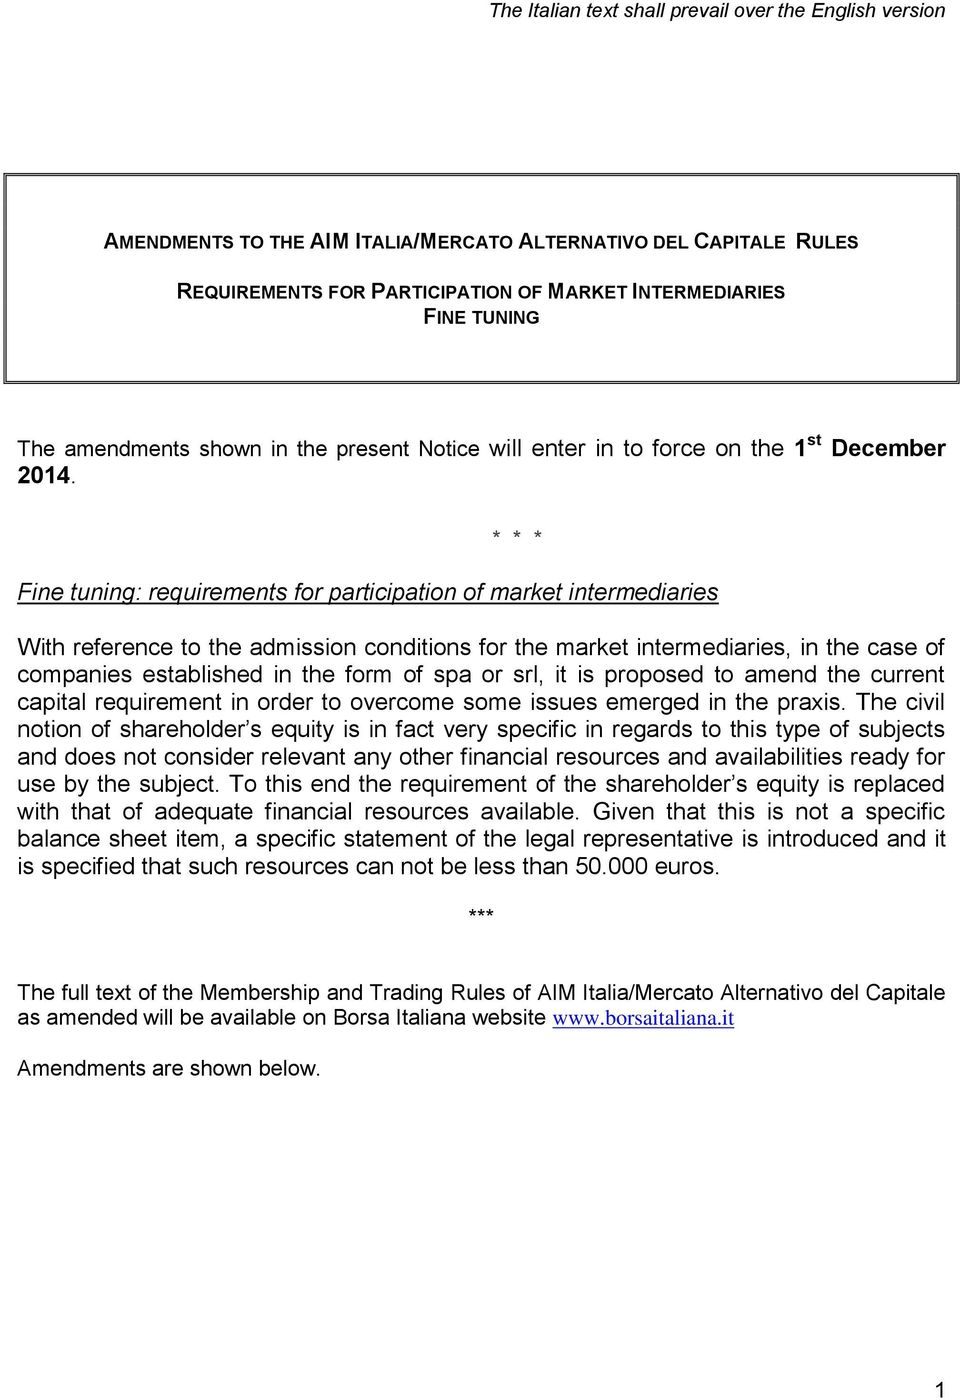 * * * Fine tuning: requirements for participation of market intermediaries With reference to the admission conditions for the market intermediaries, in the case of companies established in the form